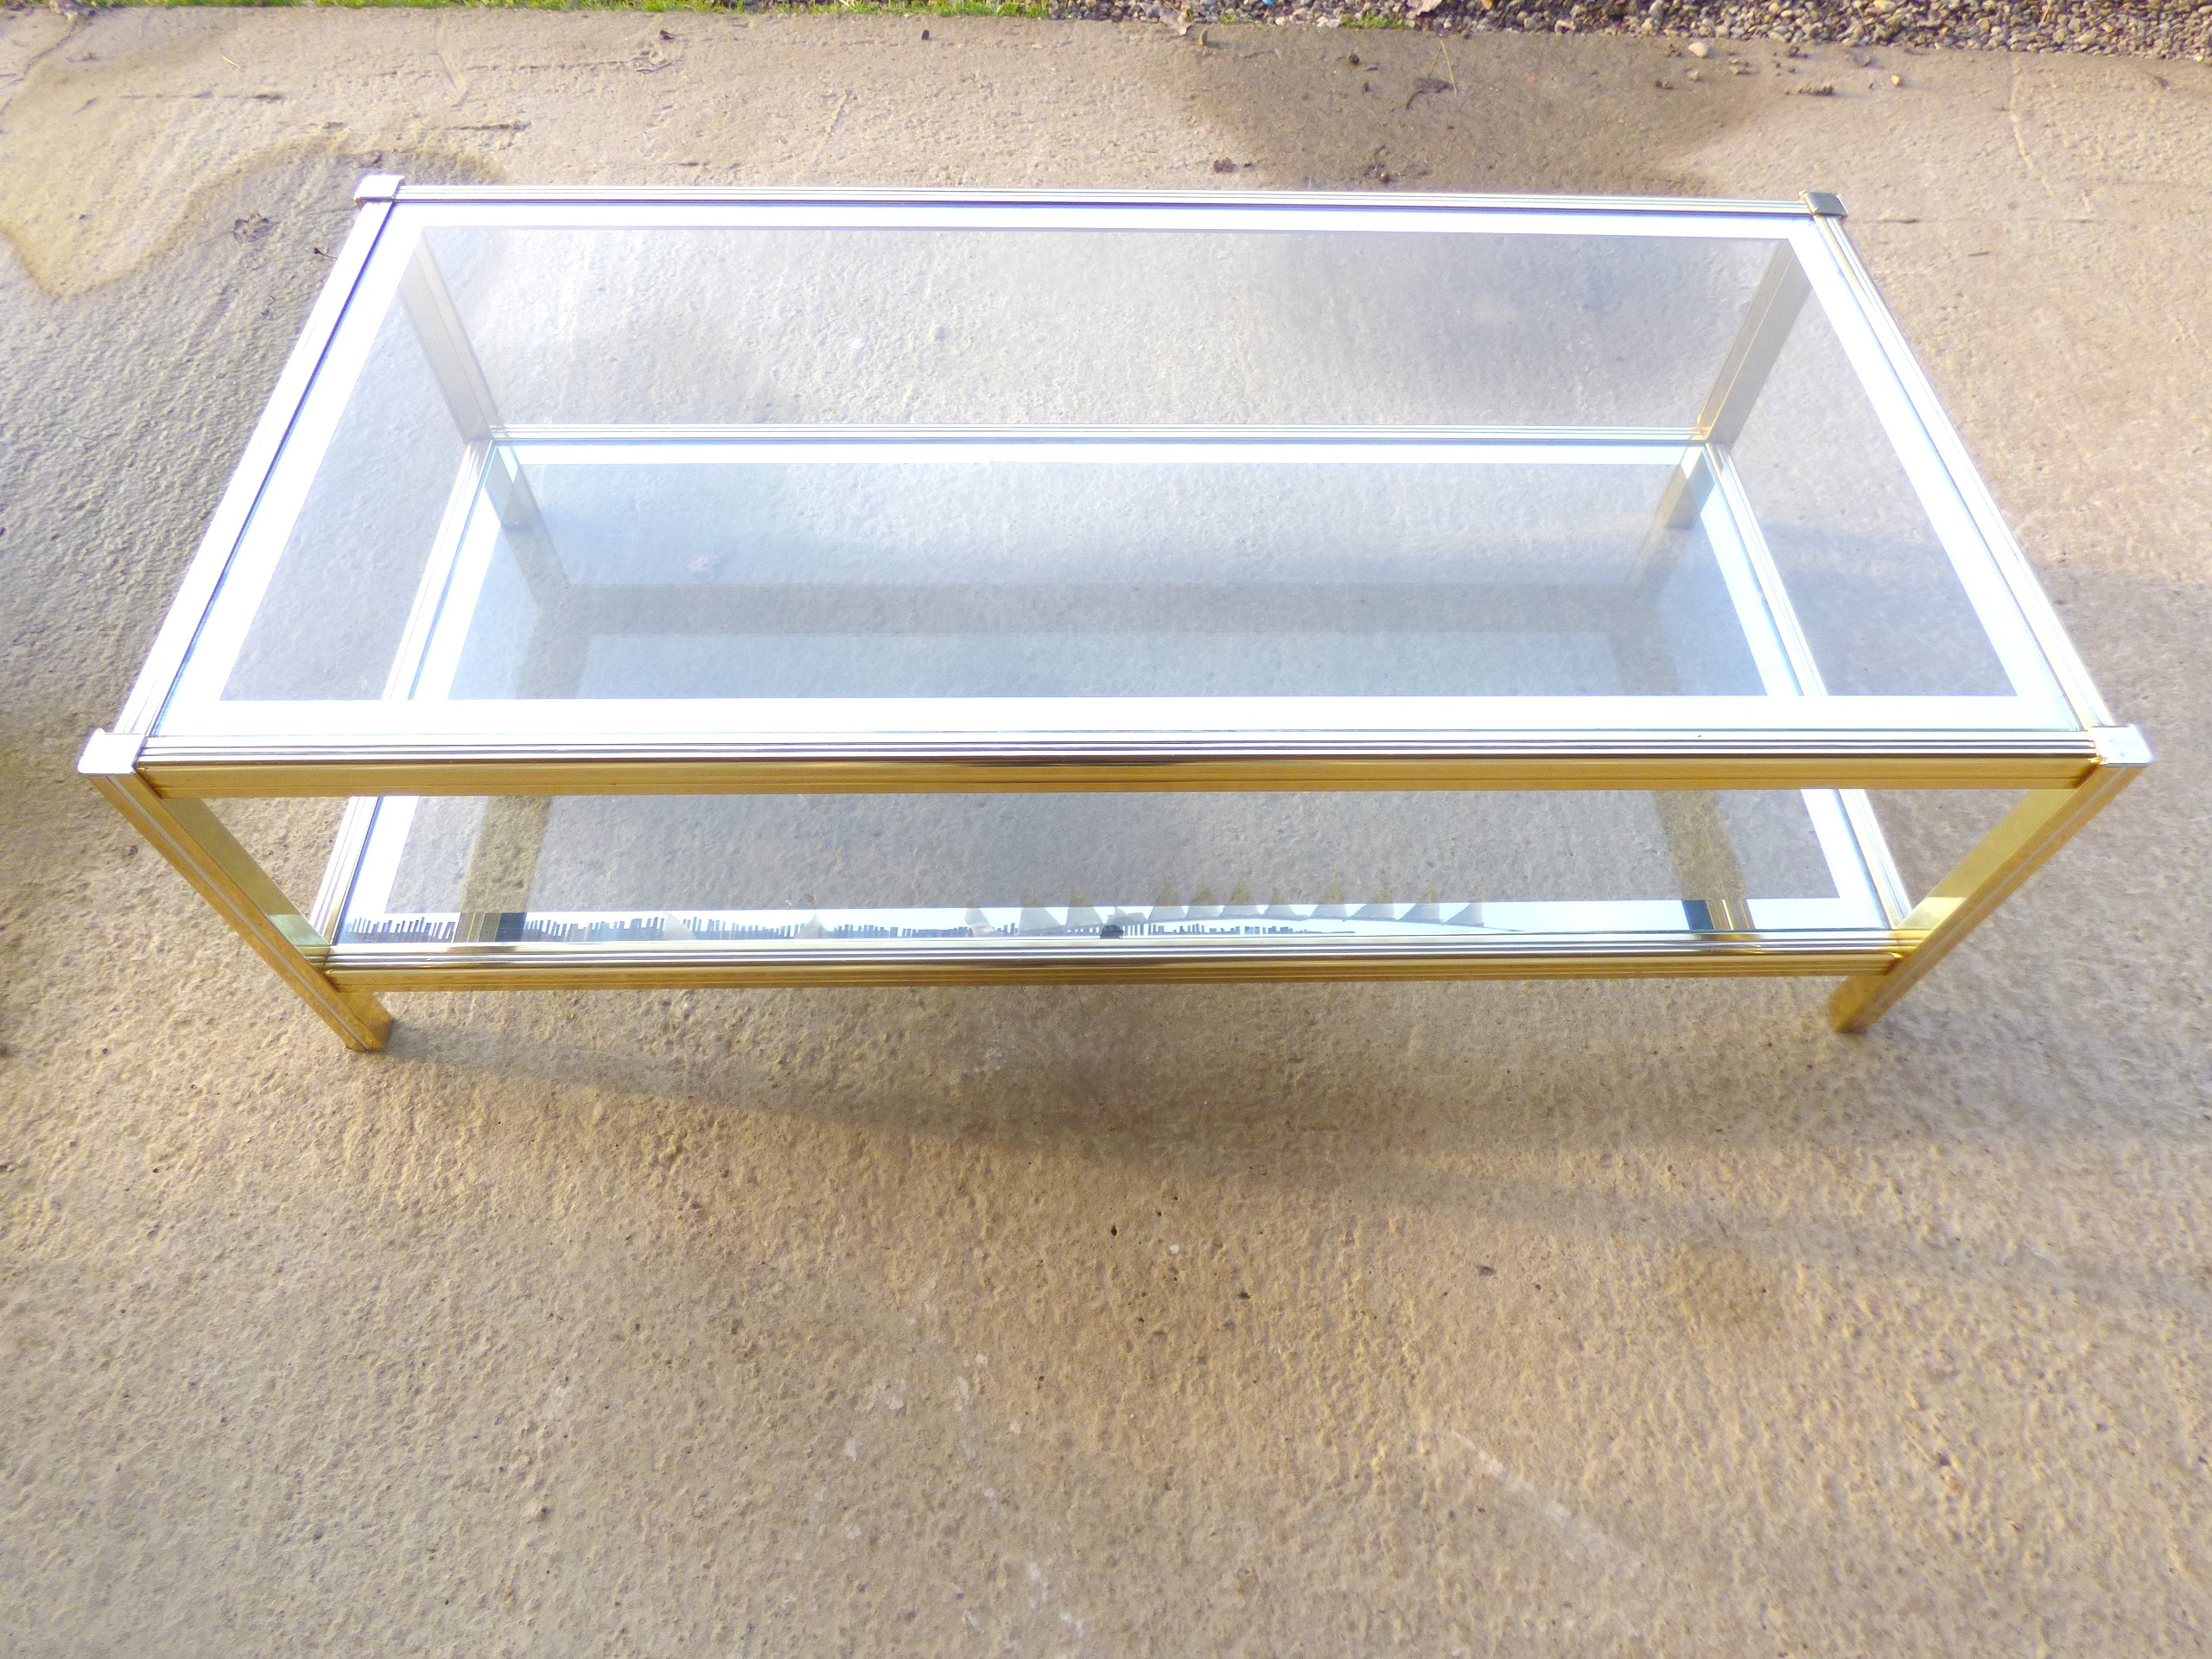 Vintage gold metal and glass coffee table 1970s Design Market